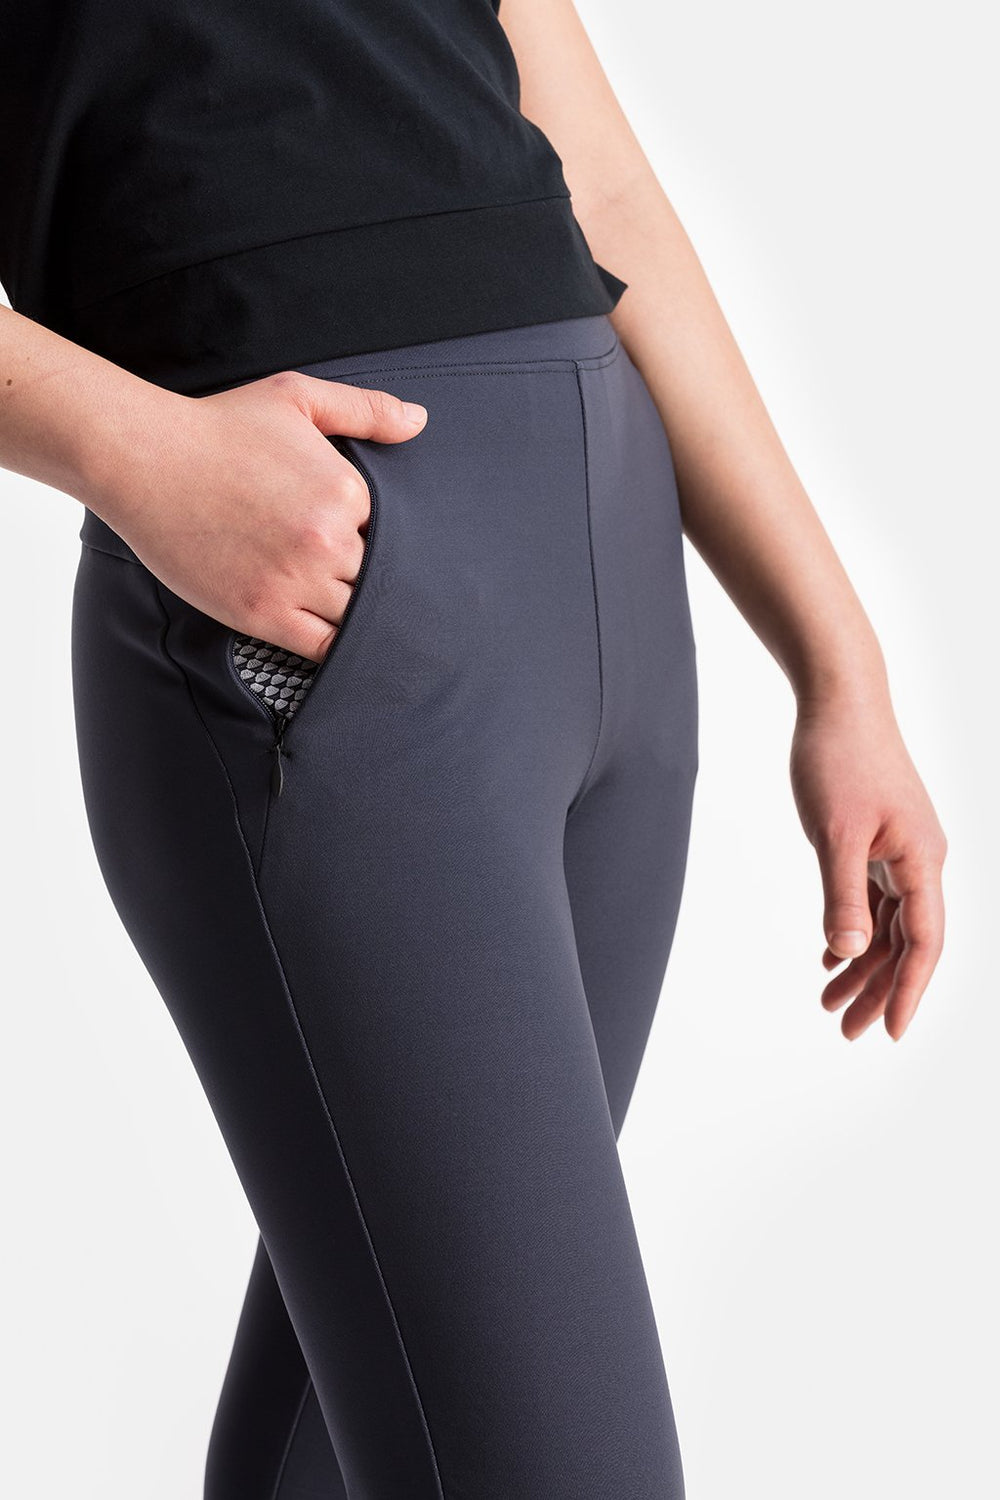 RYU Womens EveryWear Slim Pant in Asphalt